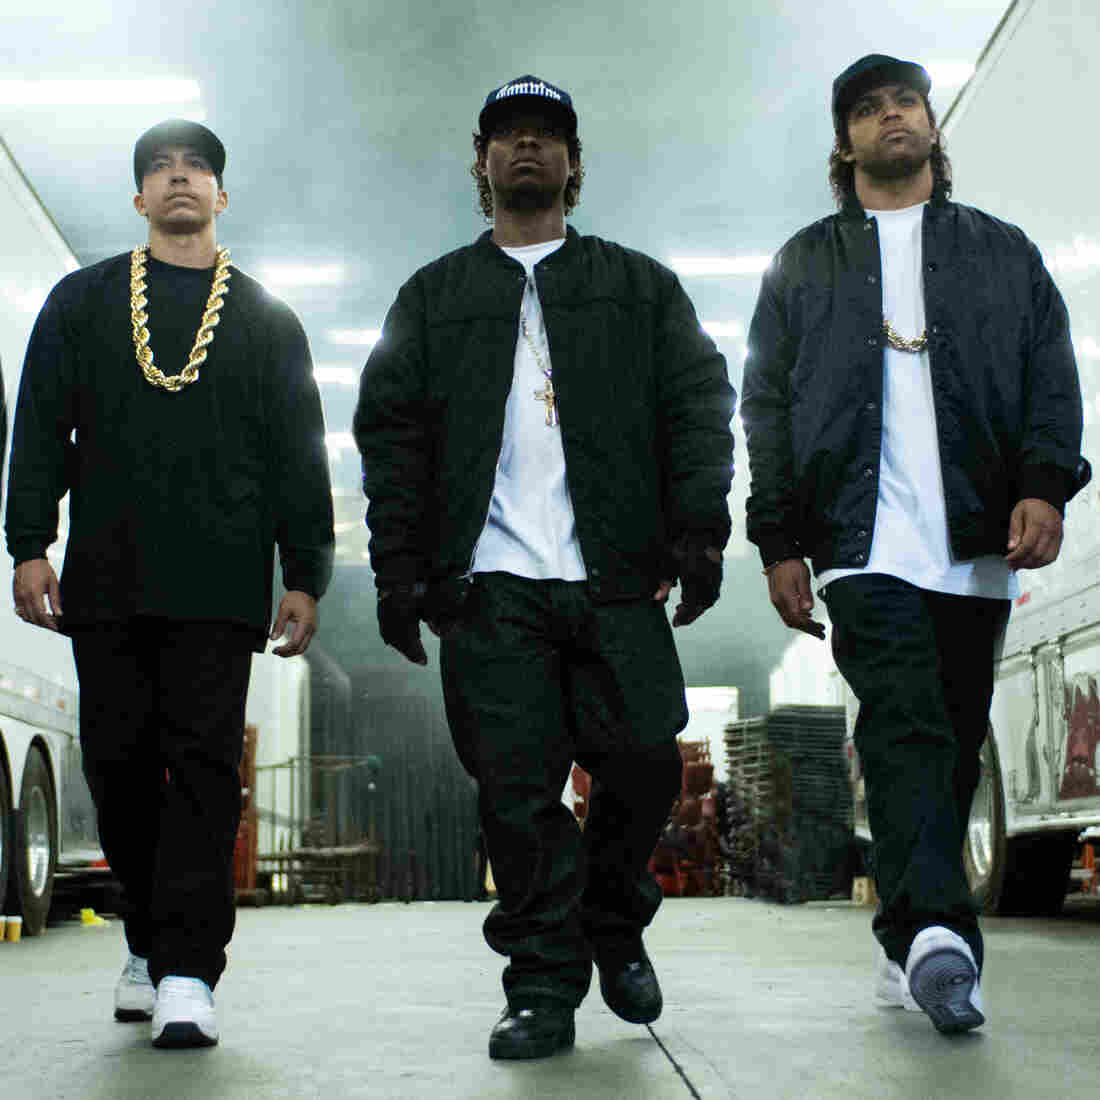 In 'Straight Outta Compton,' Hip-Hop Legends Get The Biopic Treatment